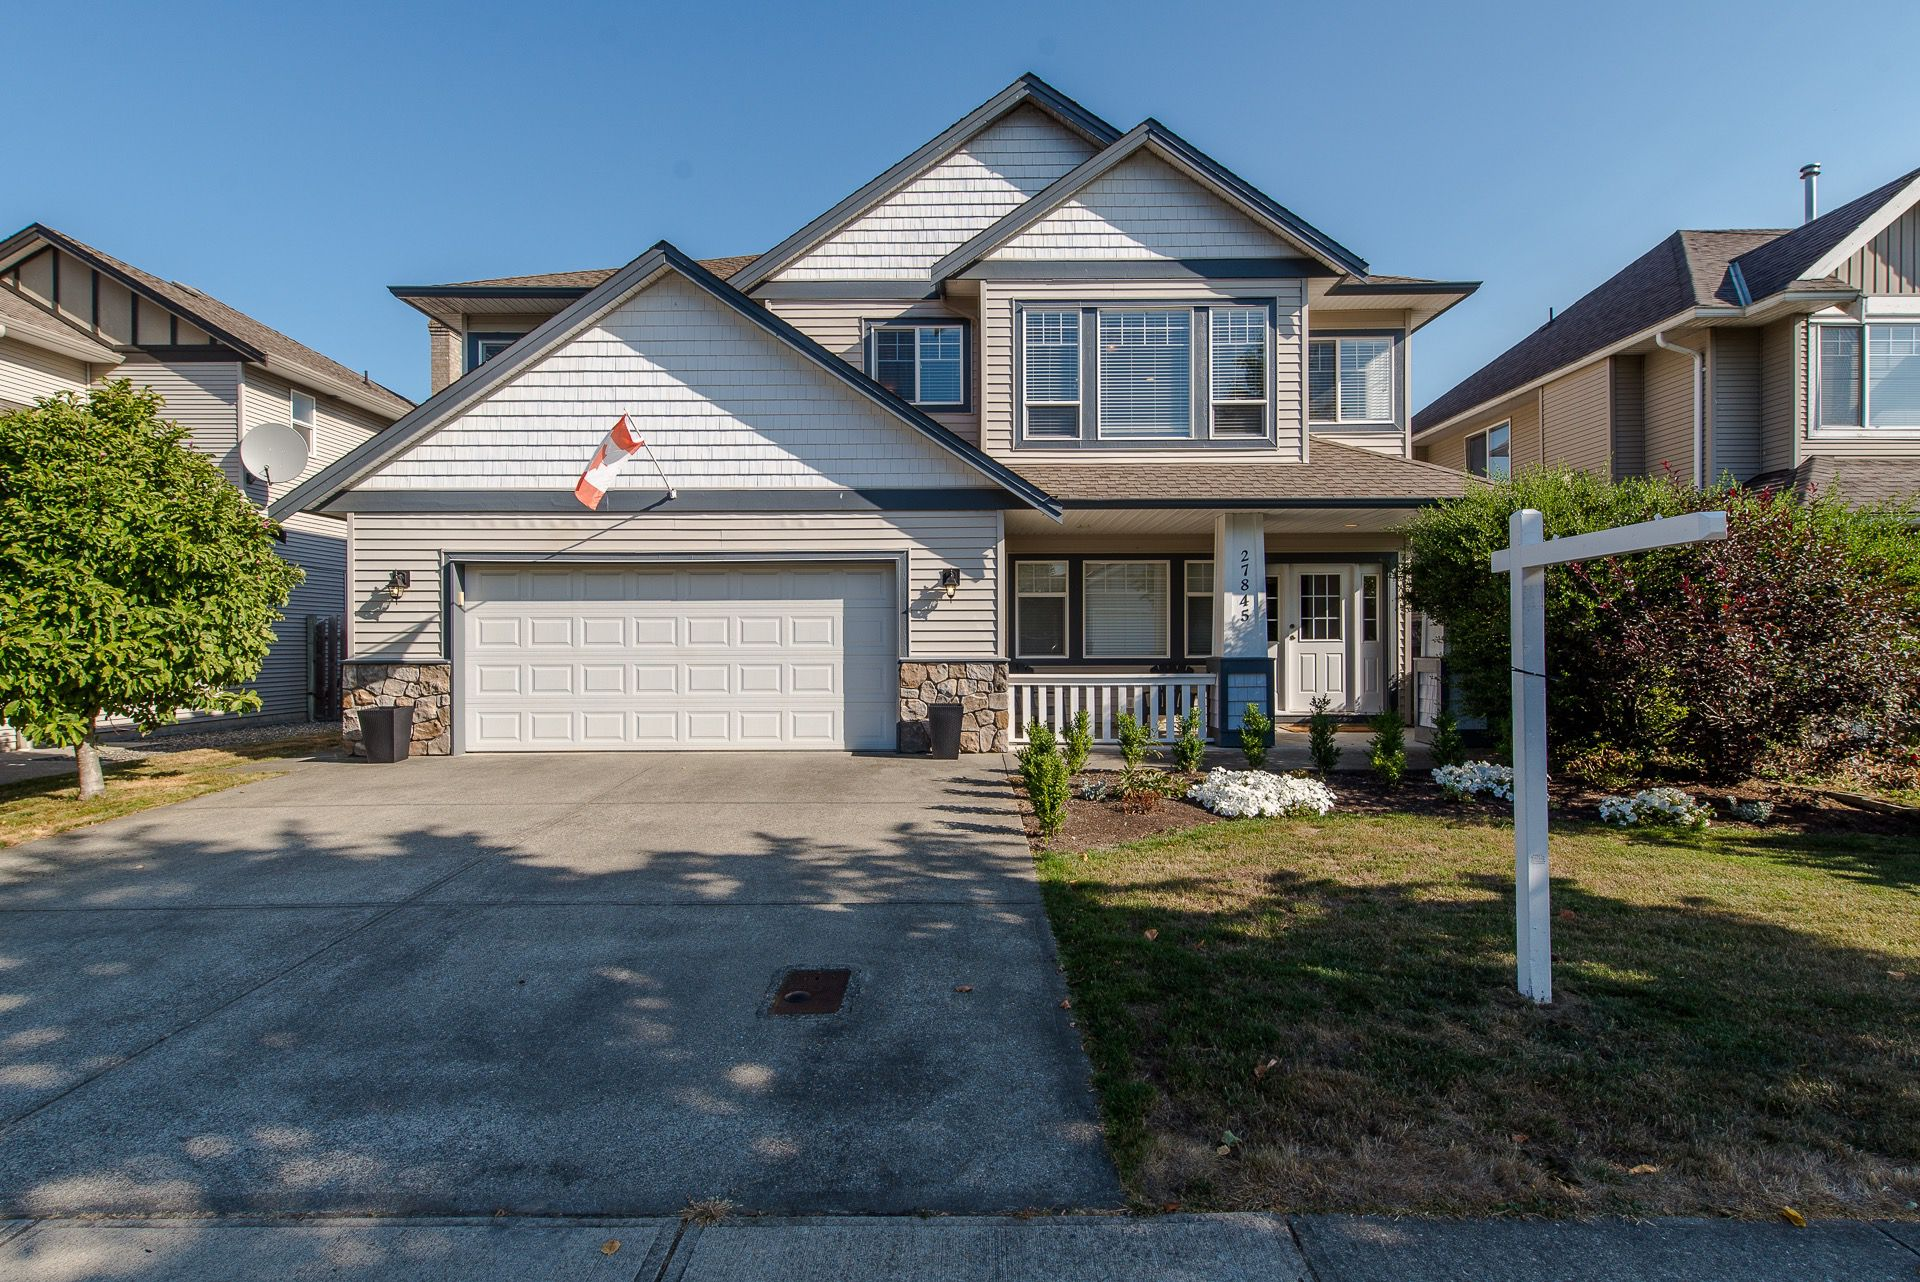 Main Photo: 27845 JUNCTION AVENUE in Abbotsford: Aberdeen House for sale : MLS®# R2199785